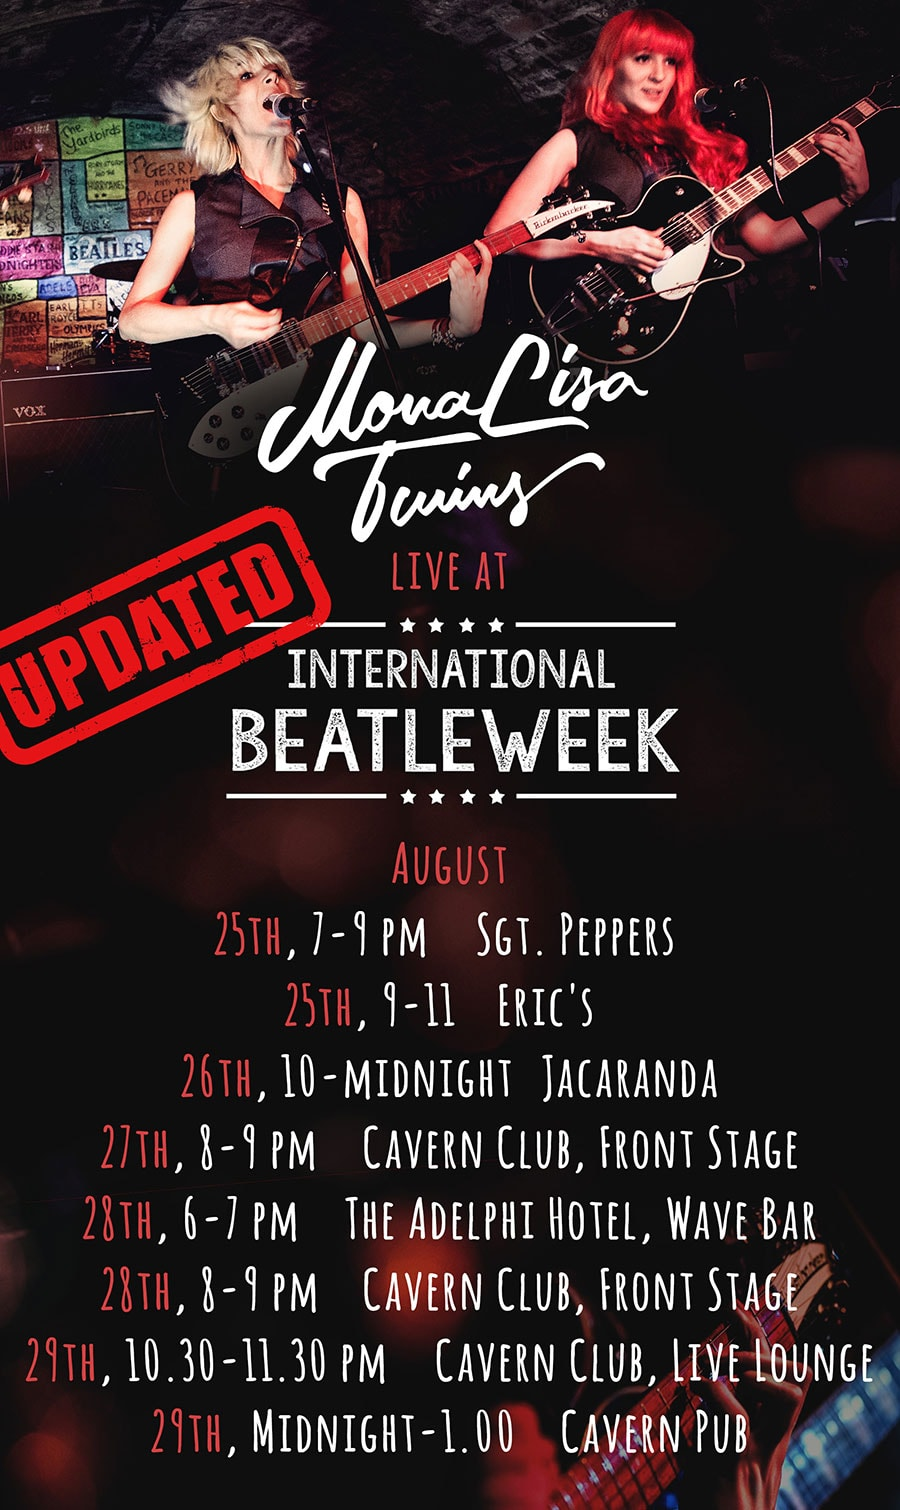 MonaLisa Twins Beatleweek Shows 2016 Flyer